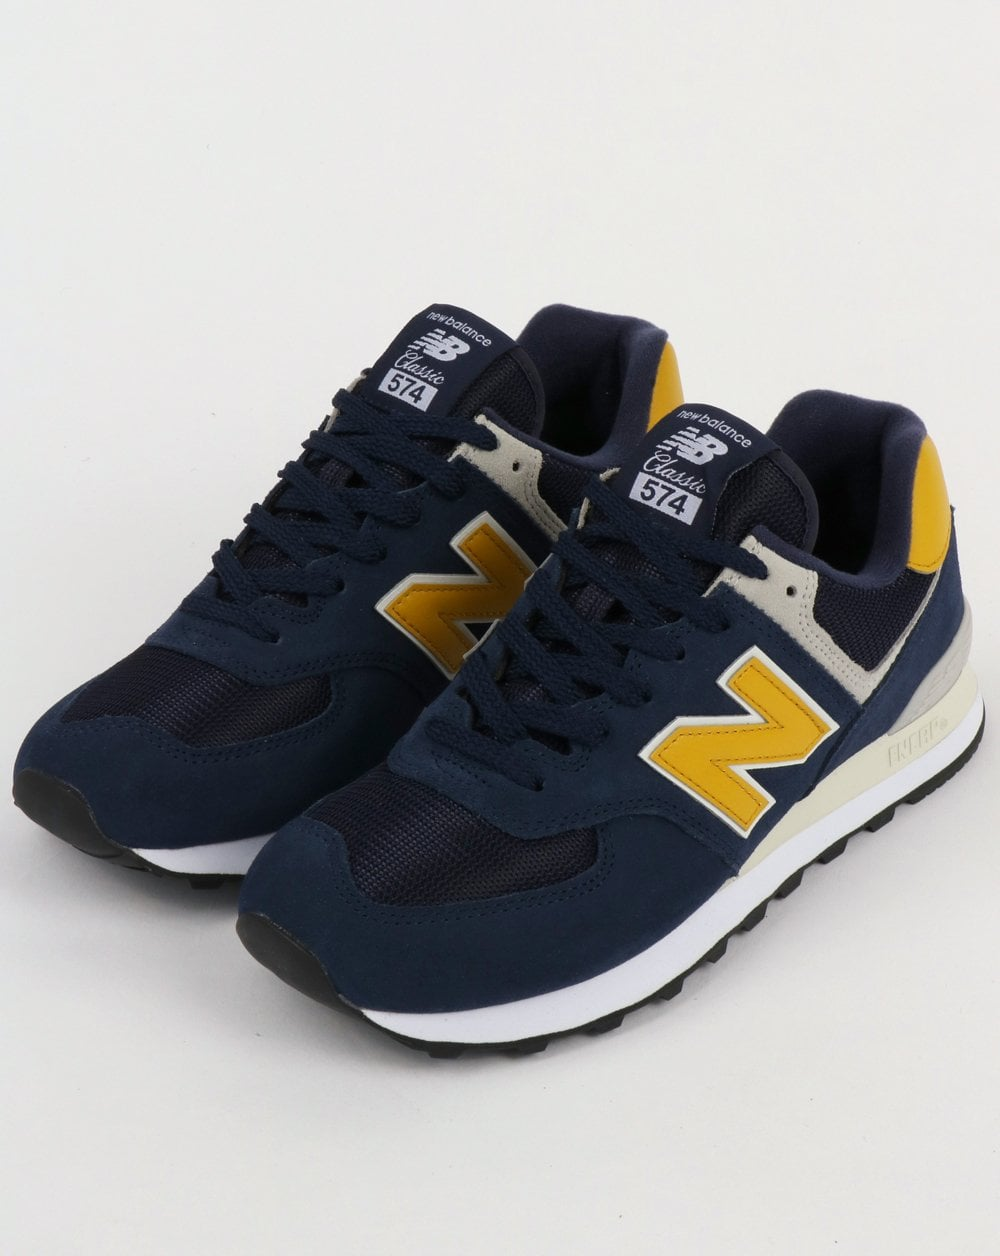 best sneakers d8fb9 3c851 New Balance 574 Trainers Navy/Yellow